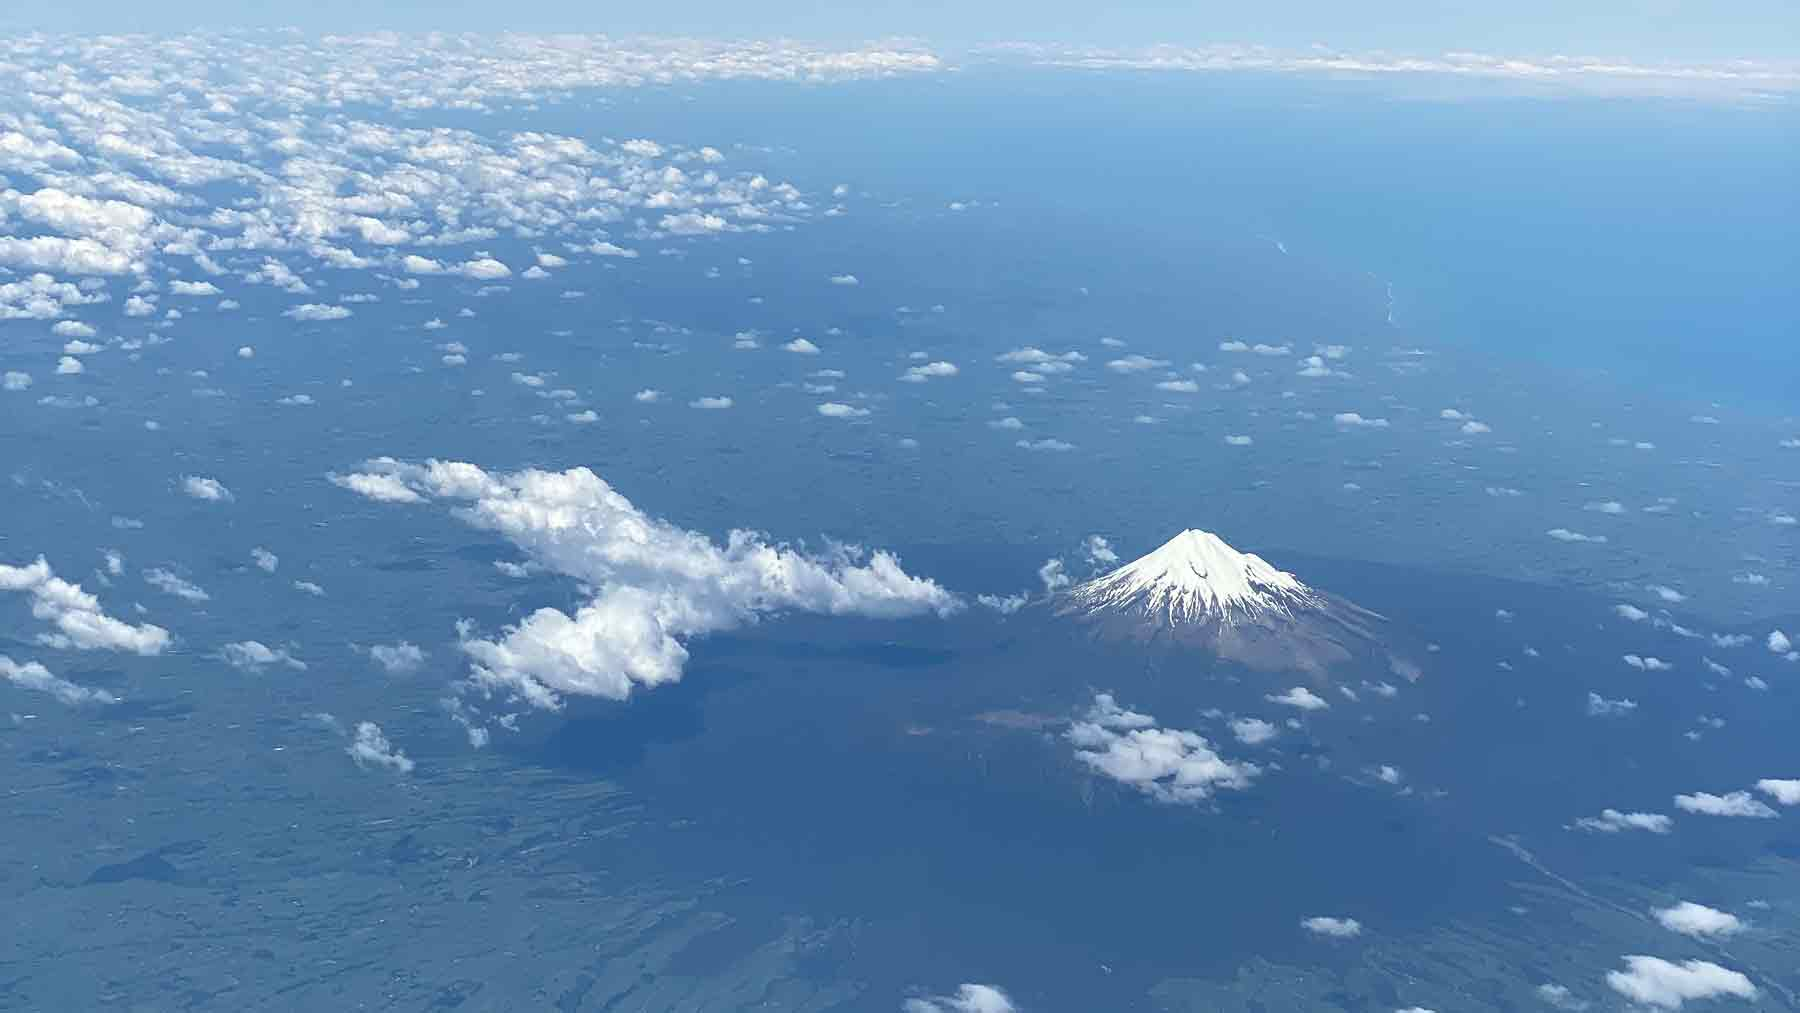 Snow covered Mount Taranaki and the coast of Taranaki from an airplane with little fluffy white clouds